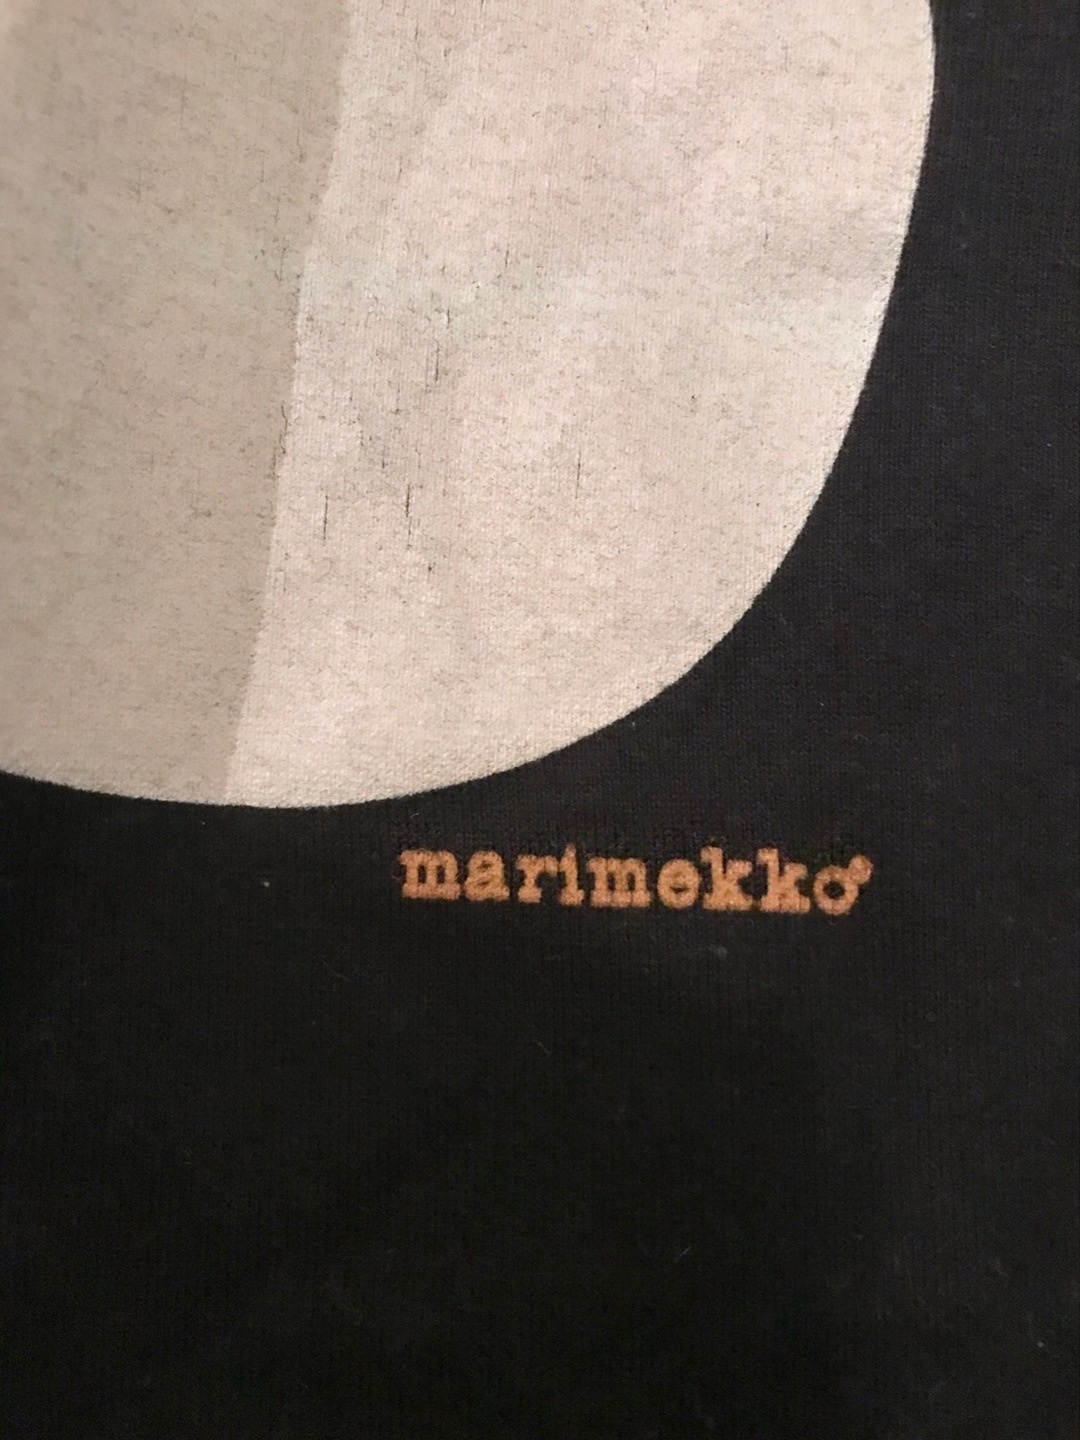 Damen tops & t-shirts - MARIMEKKO photo 3